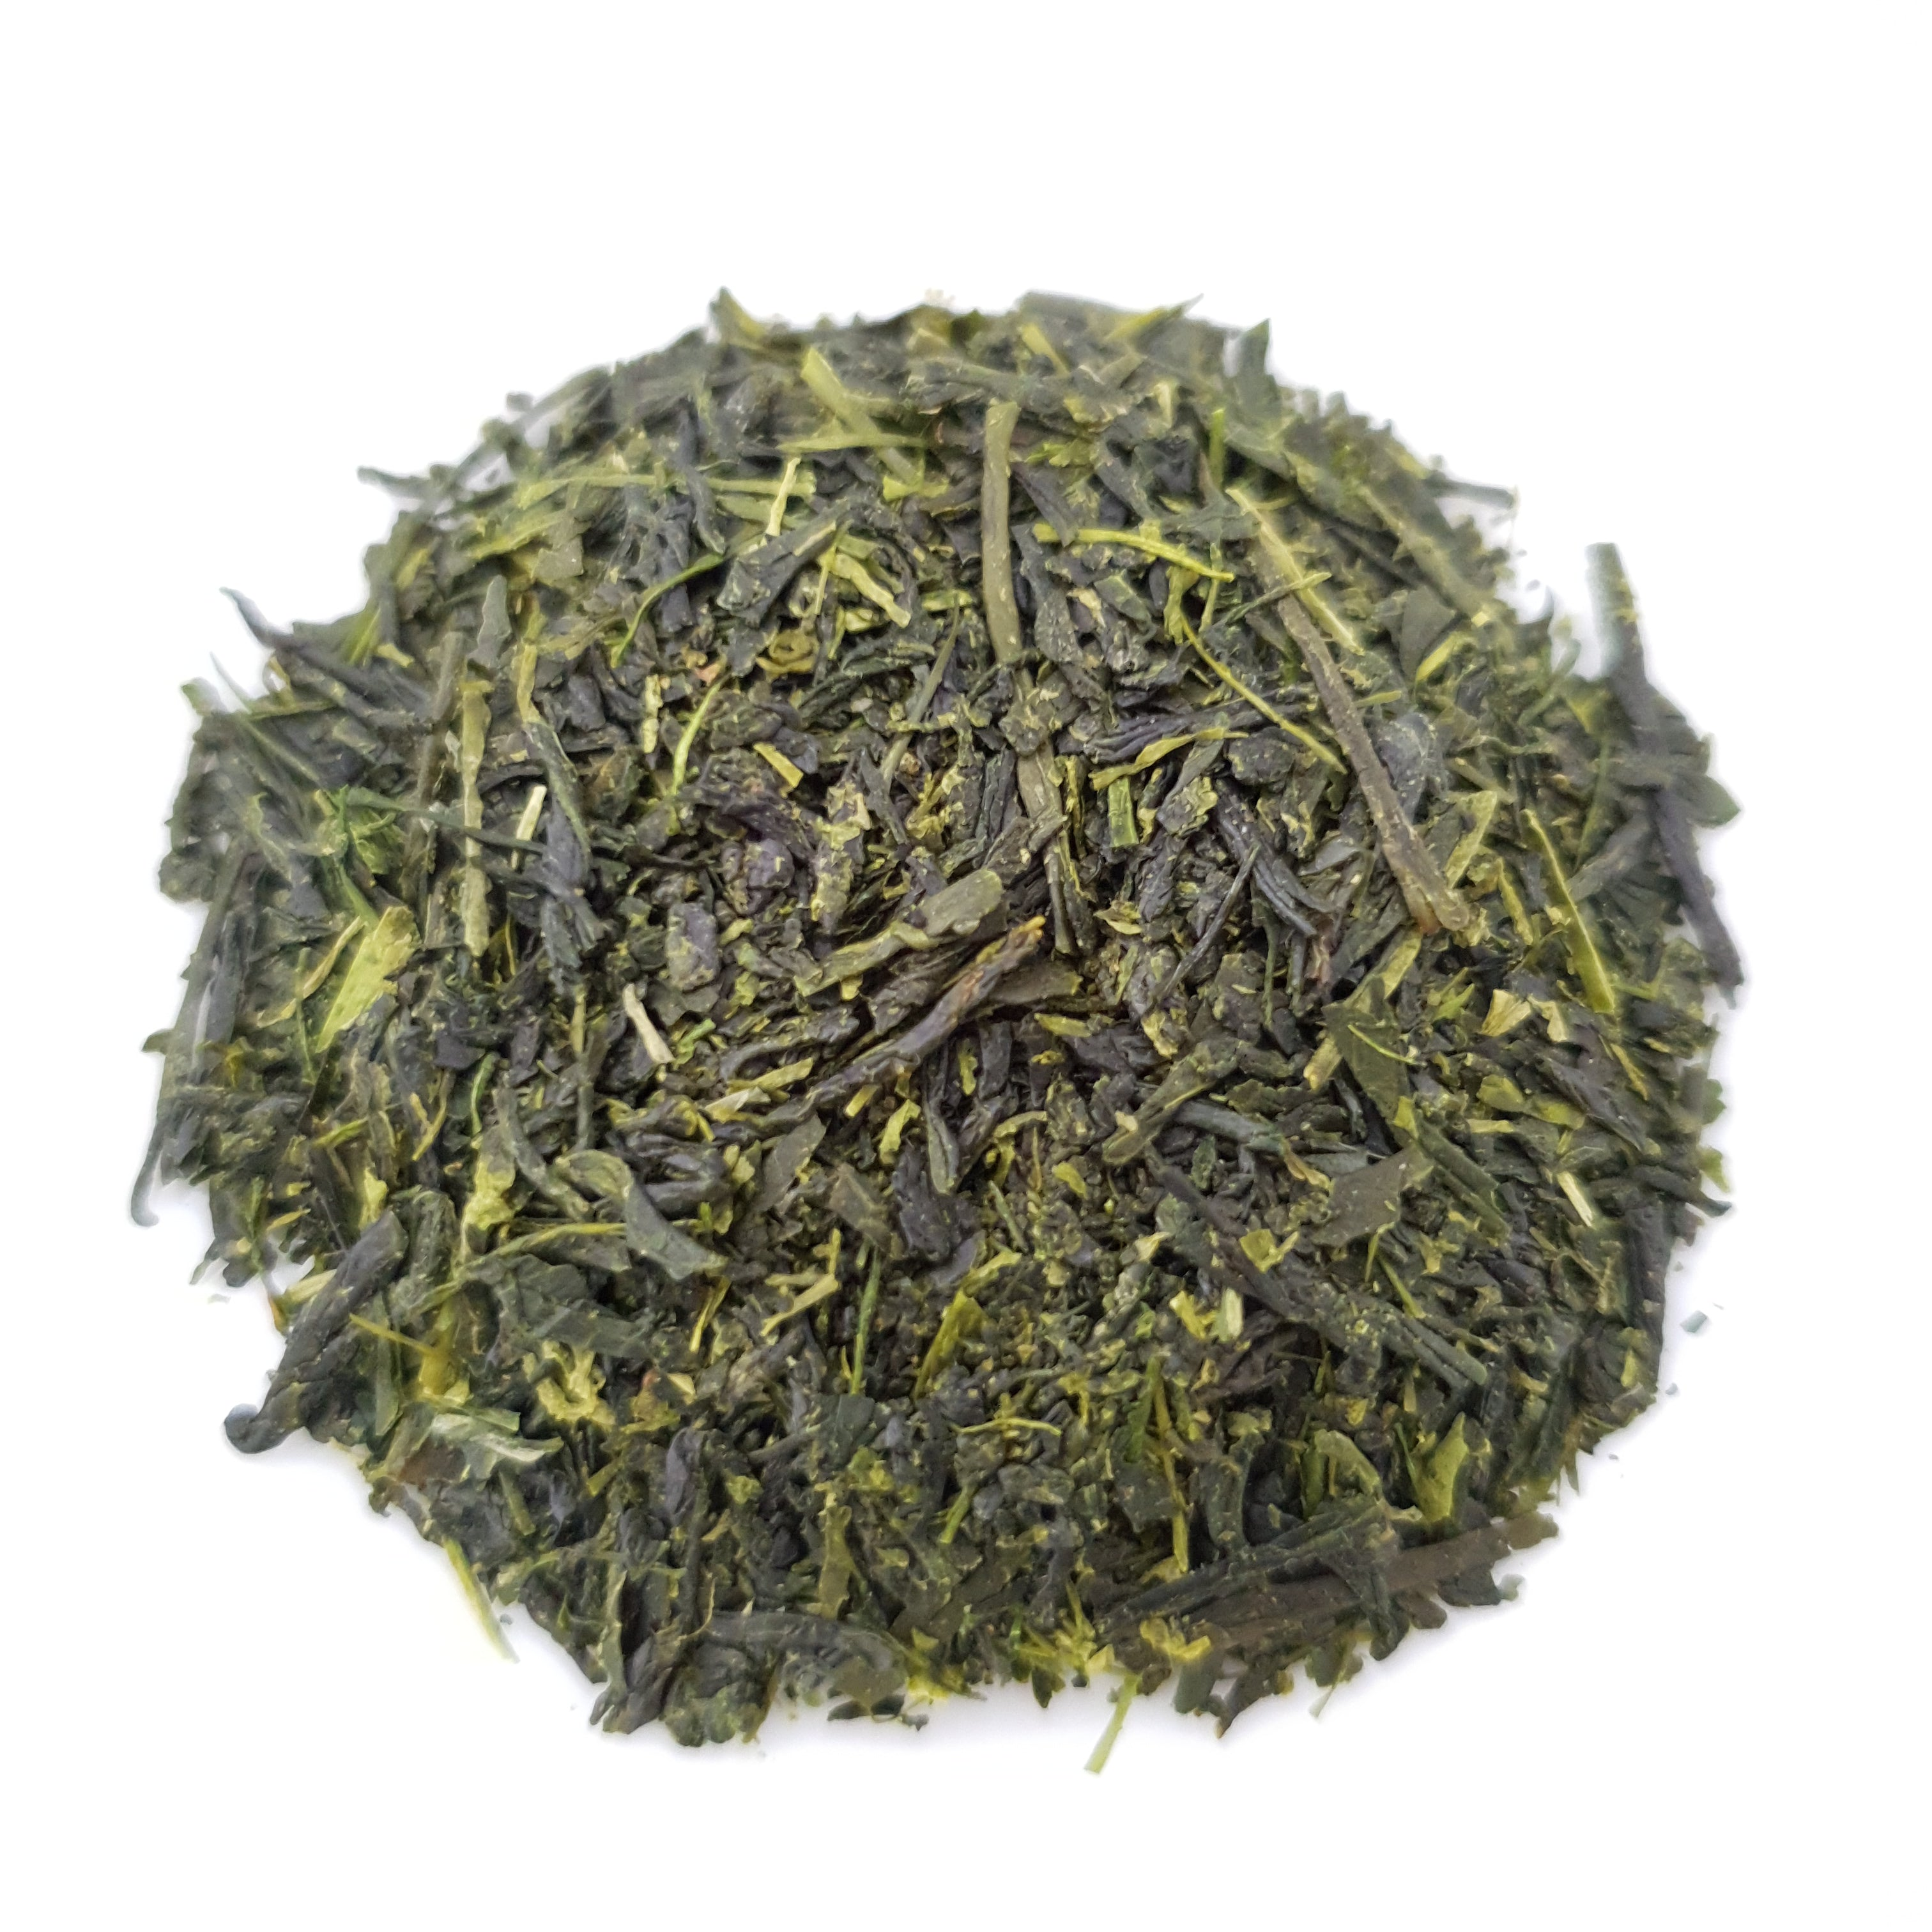 Fukamushi sencha Japanese green tea leaves